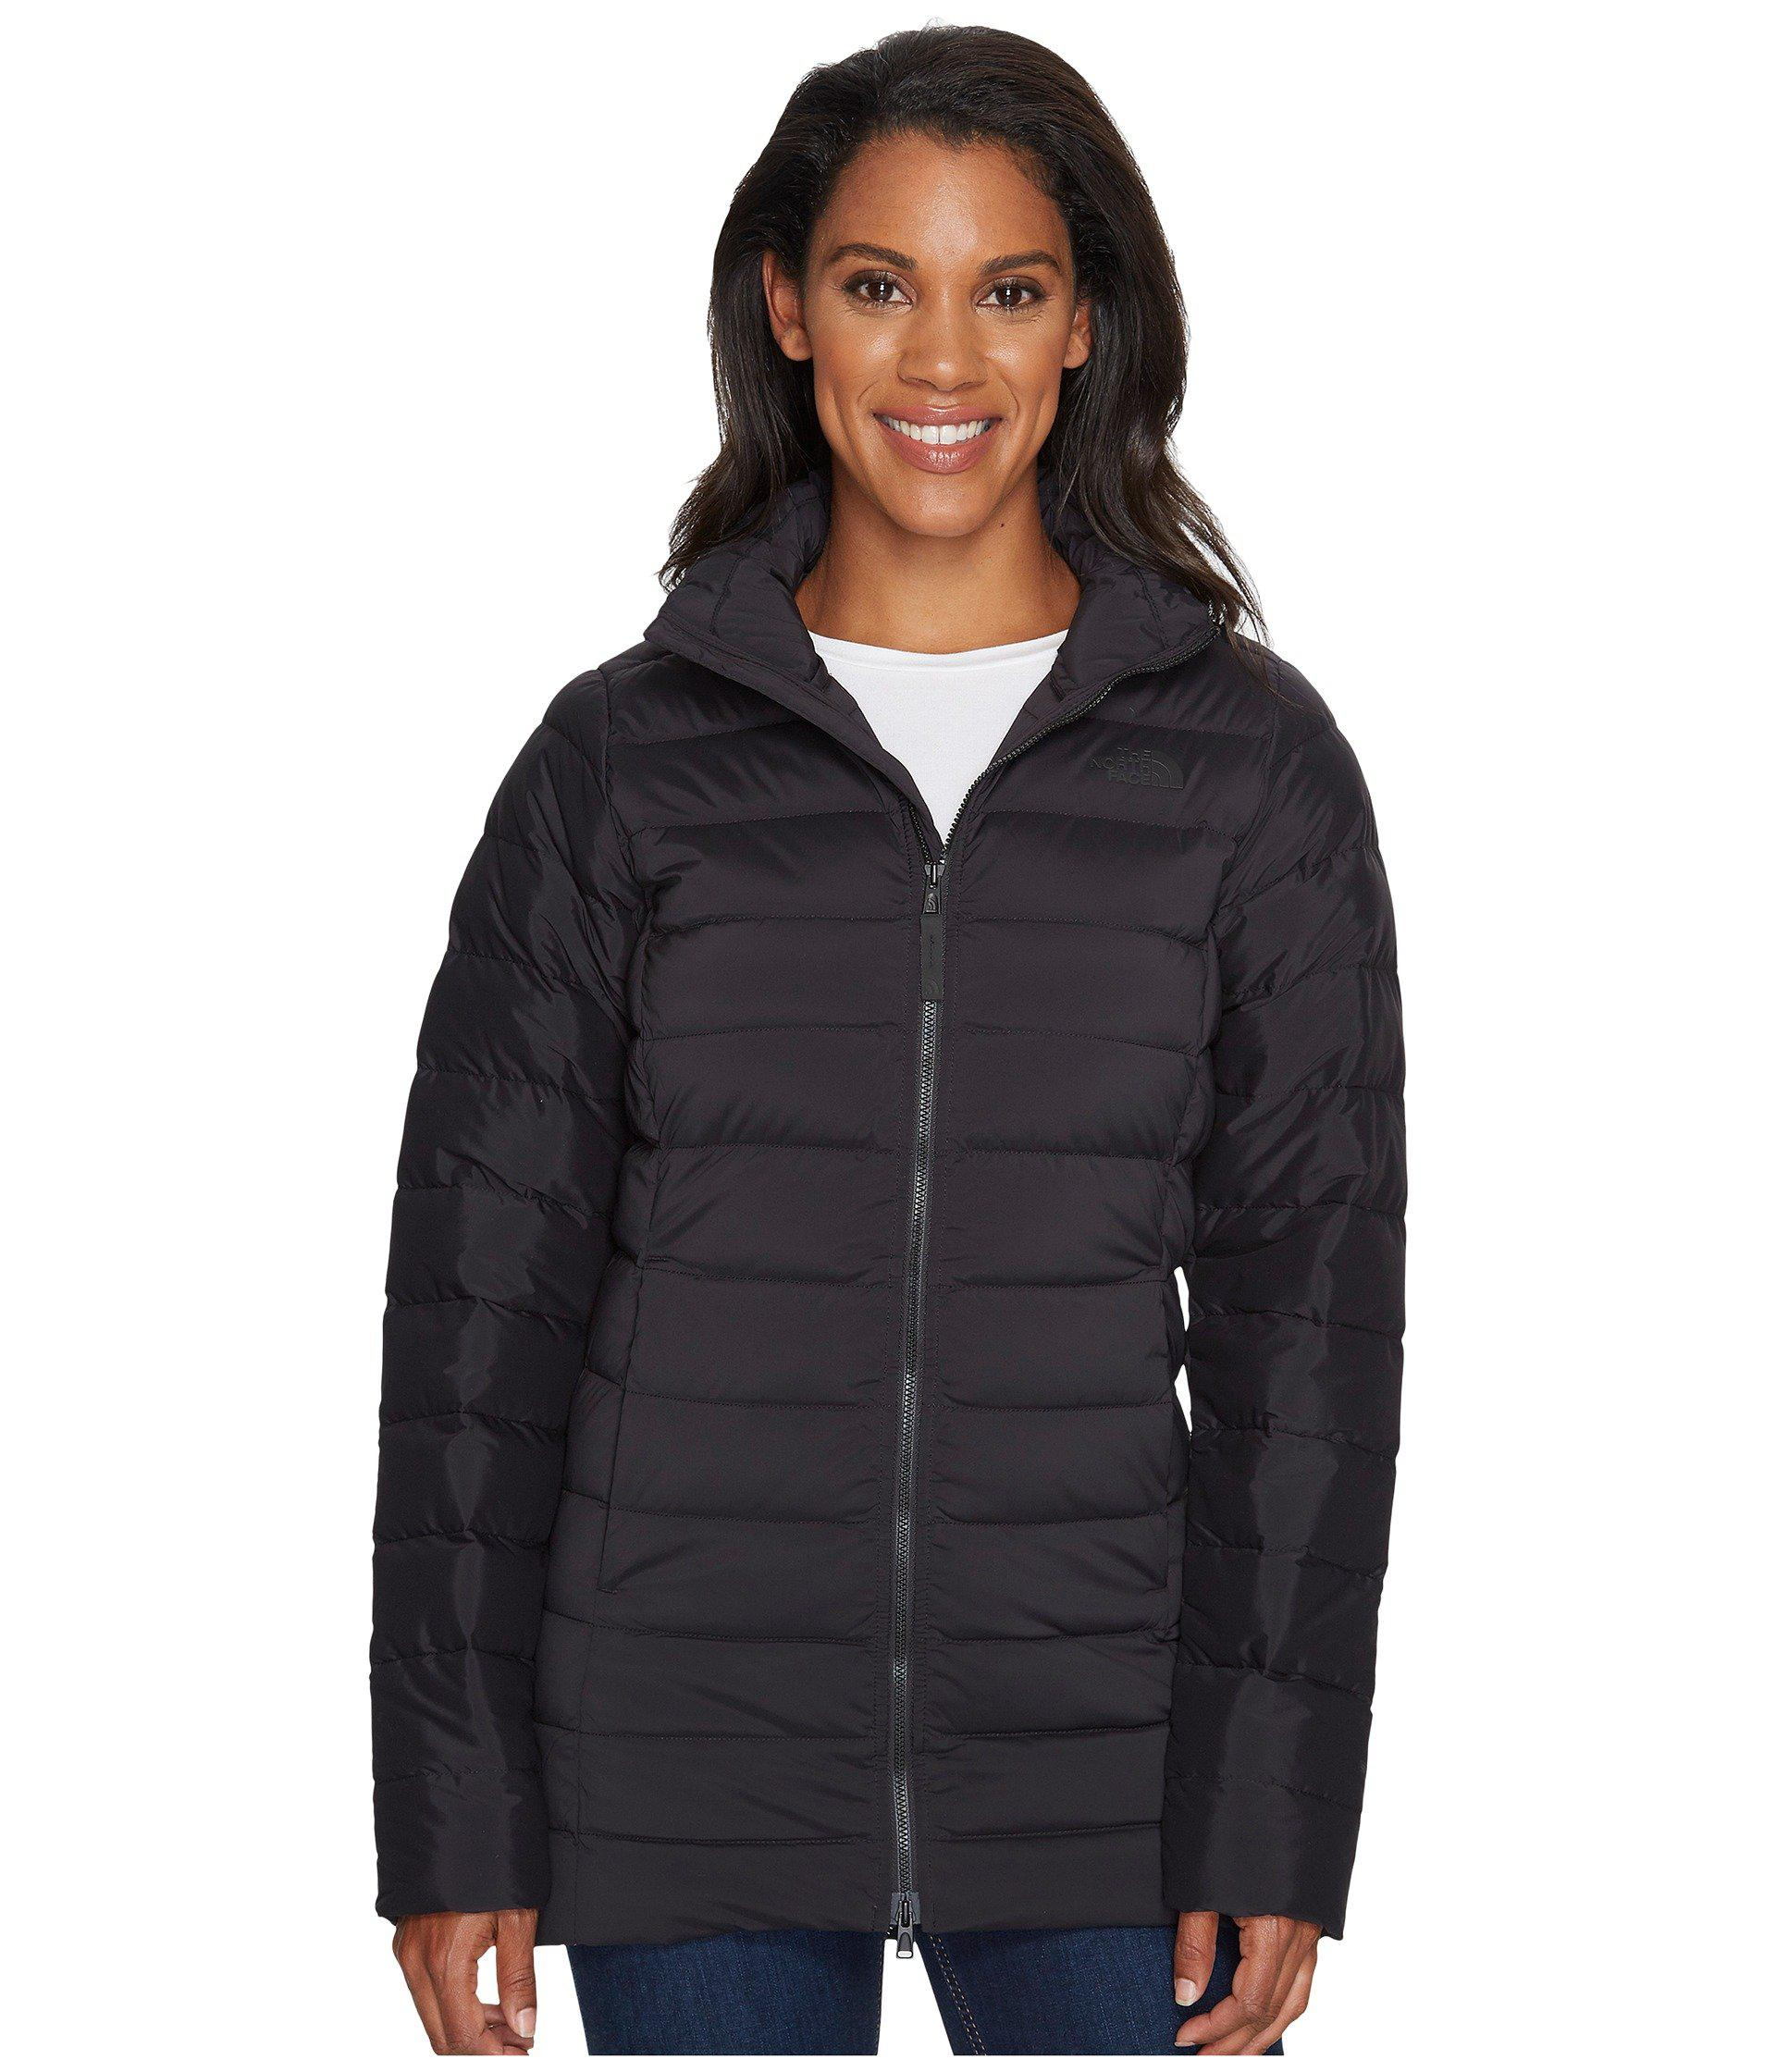 Lyst - The North Face Stretch Down Parka (asphalt Grey) Women s Coat ... e48c6bae2